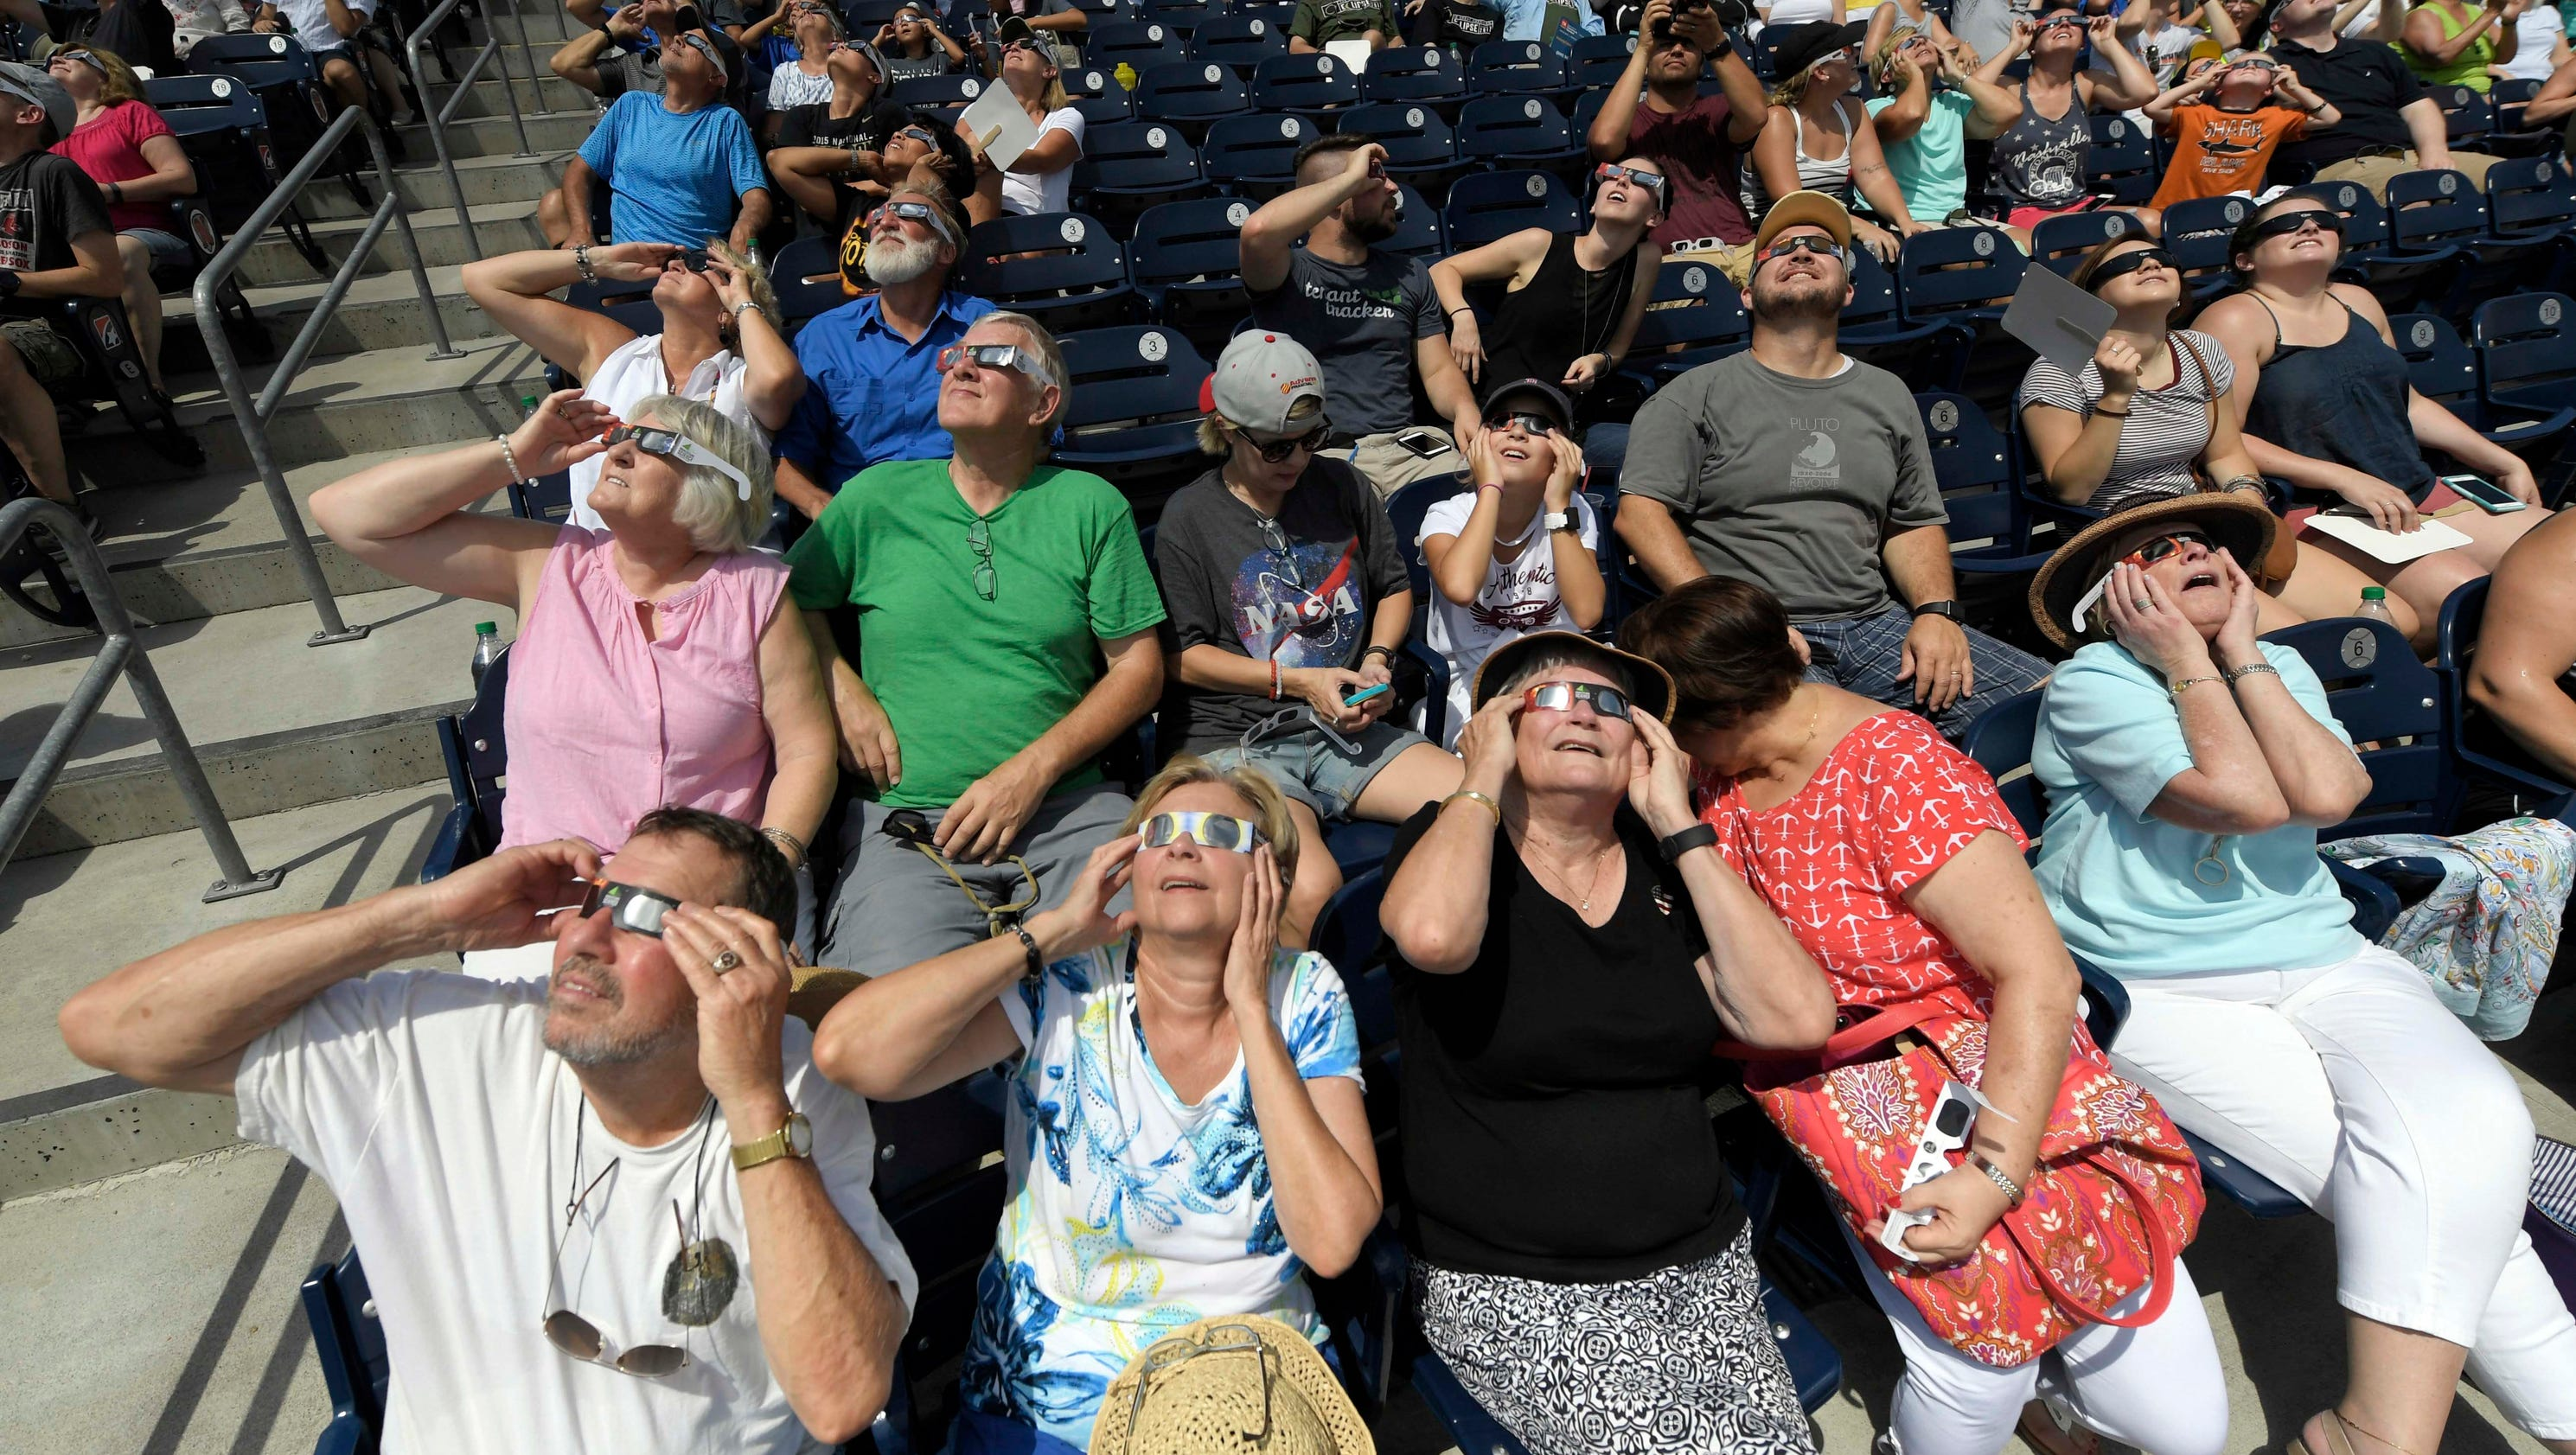 Solar Eclipse Eclipse Captivates Nation USA Forgets Troubles - 17 incredible photos of the 2017 solar eclipse